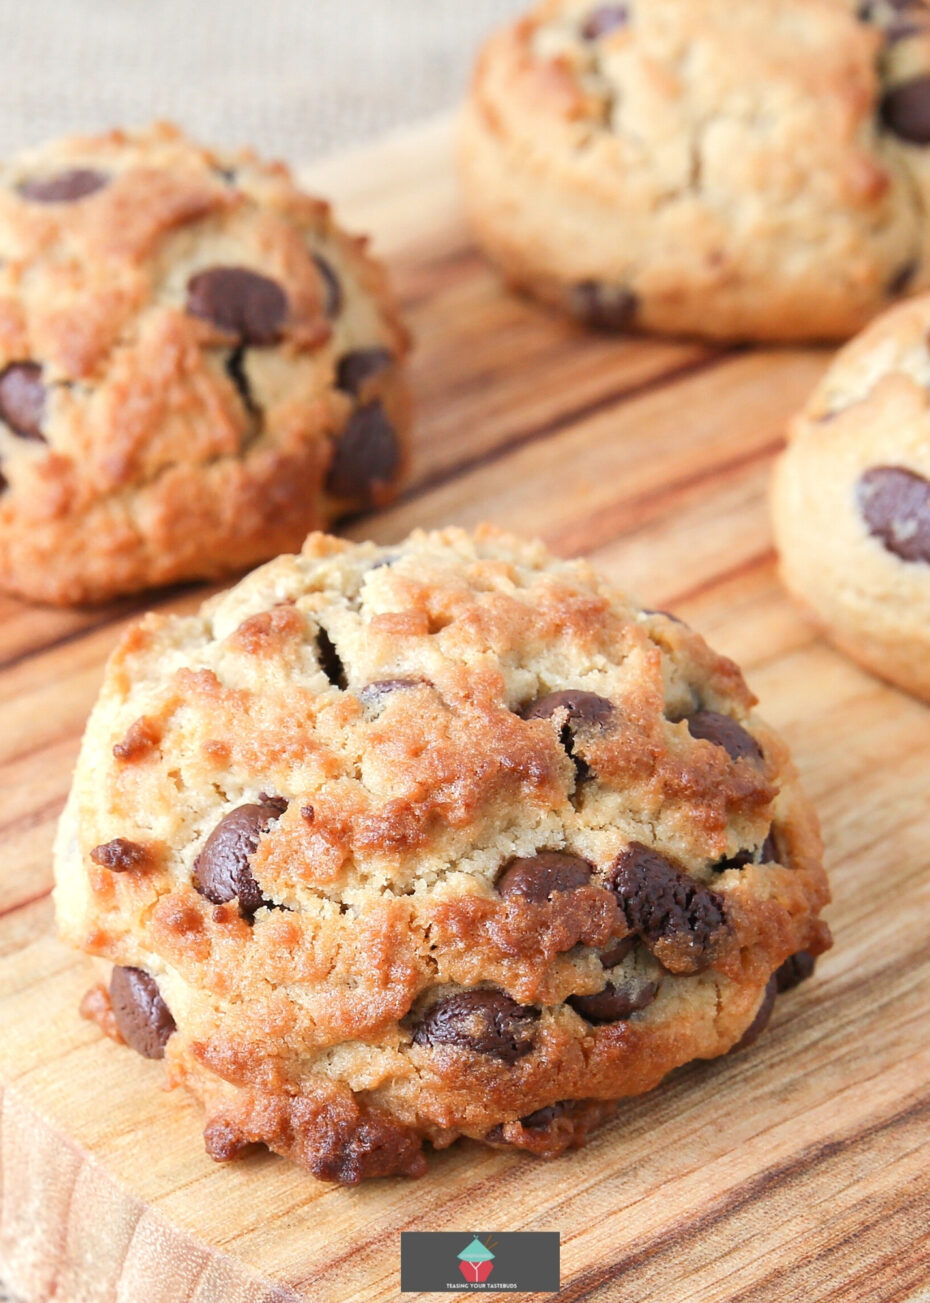 Joy Cookies. This is an easy recipe packed full of delicious chocolate, coconut and vanilla. These go fast so be sure to bake plenty!